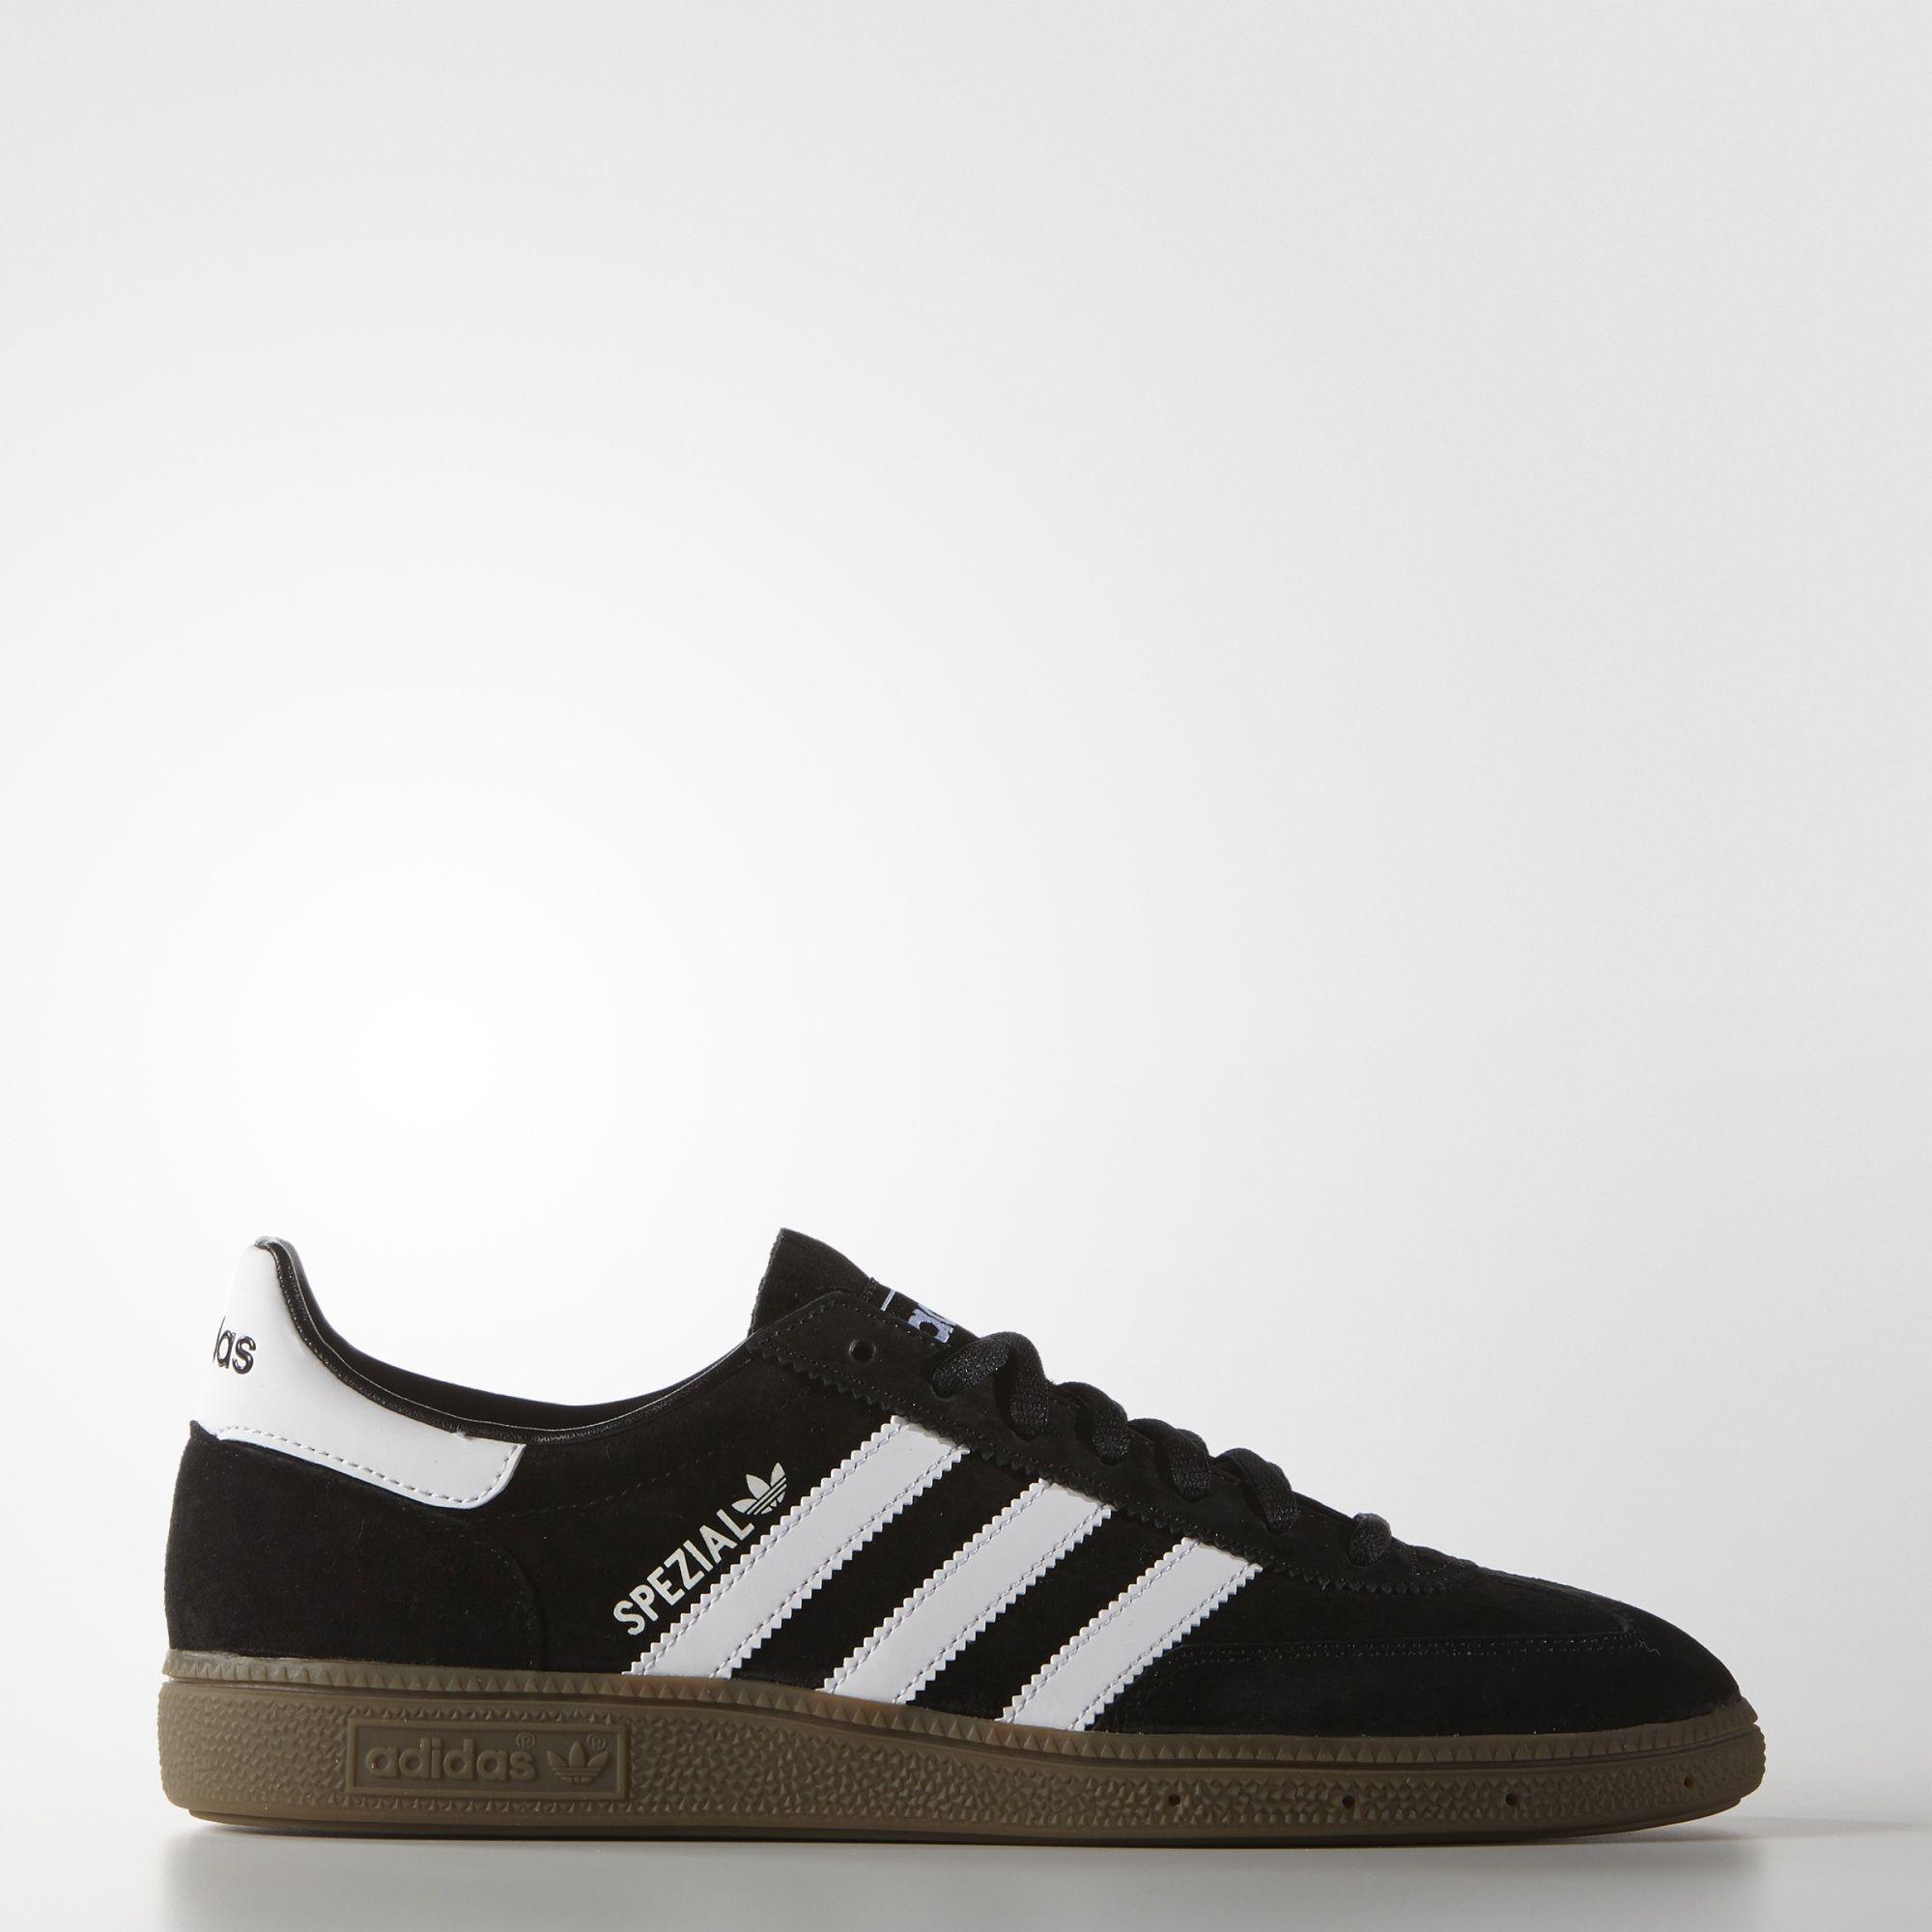 In adidas first released the Spezial as the official elite-level handball  shoe. It soon became the shoe of choice for some of the world's finest  players.